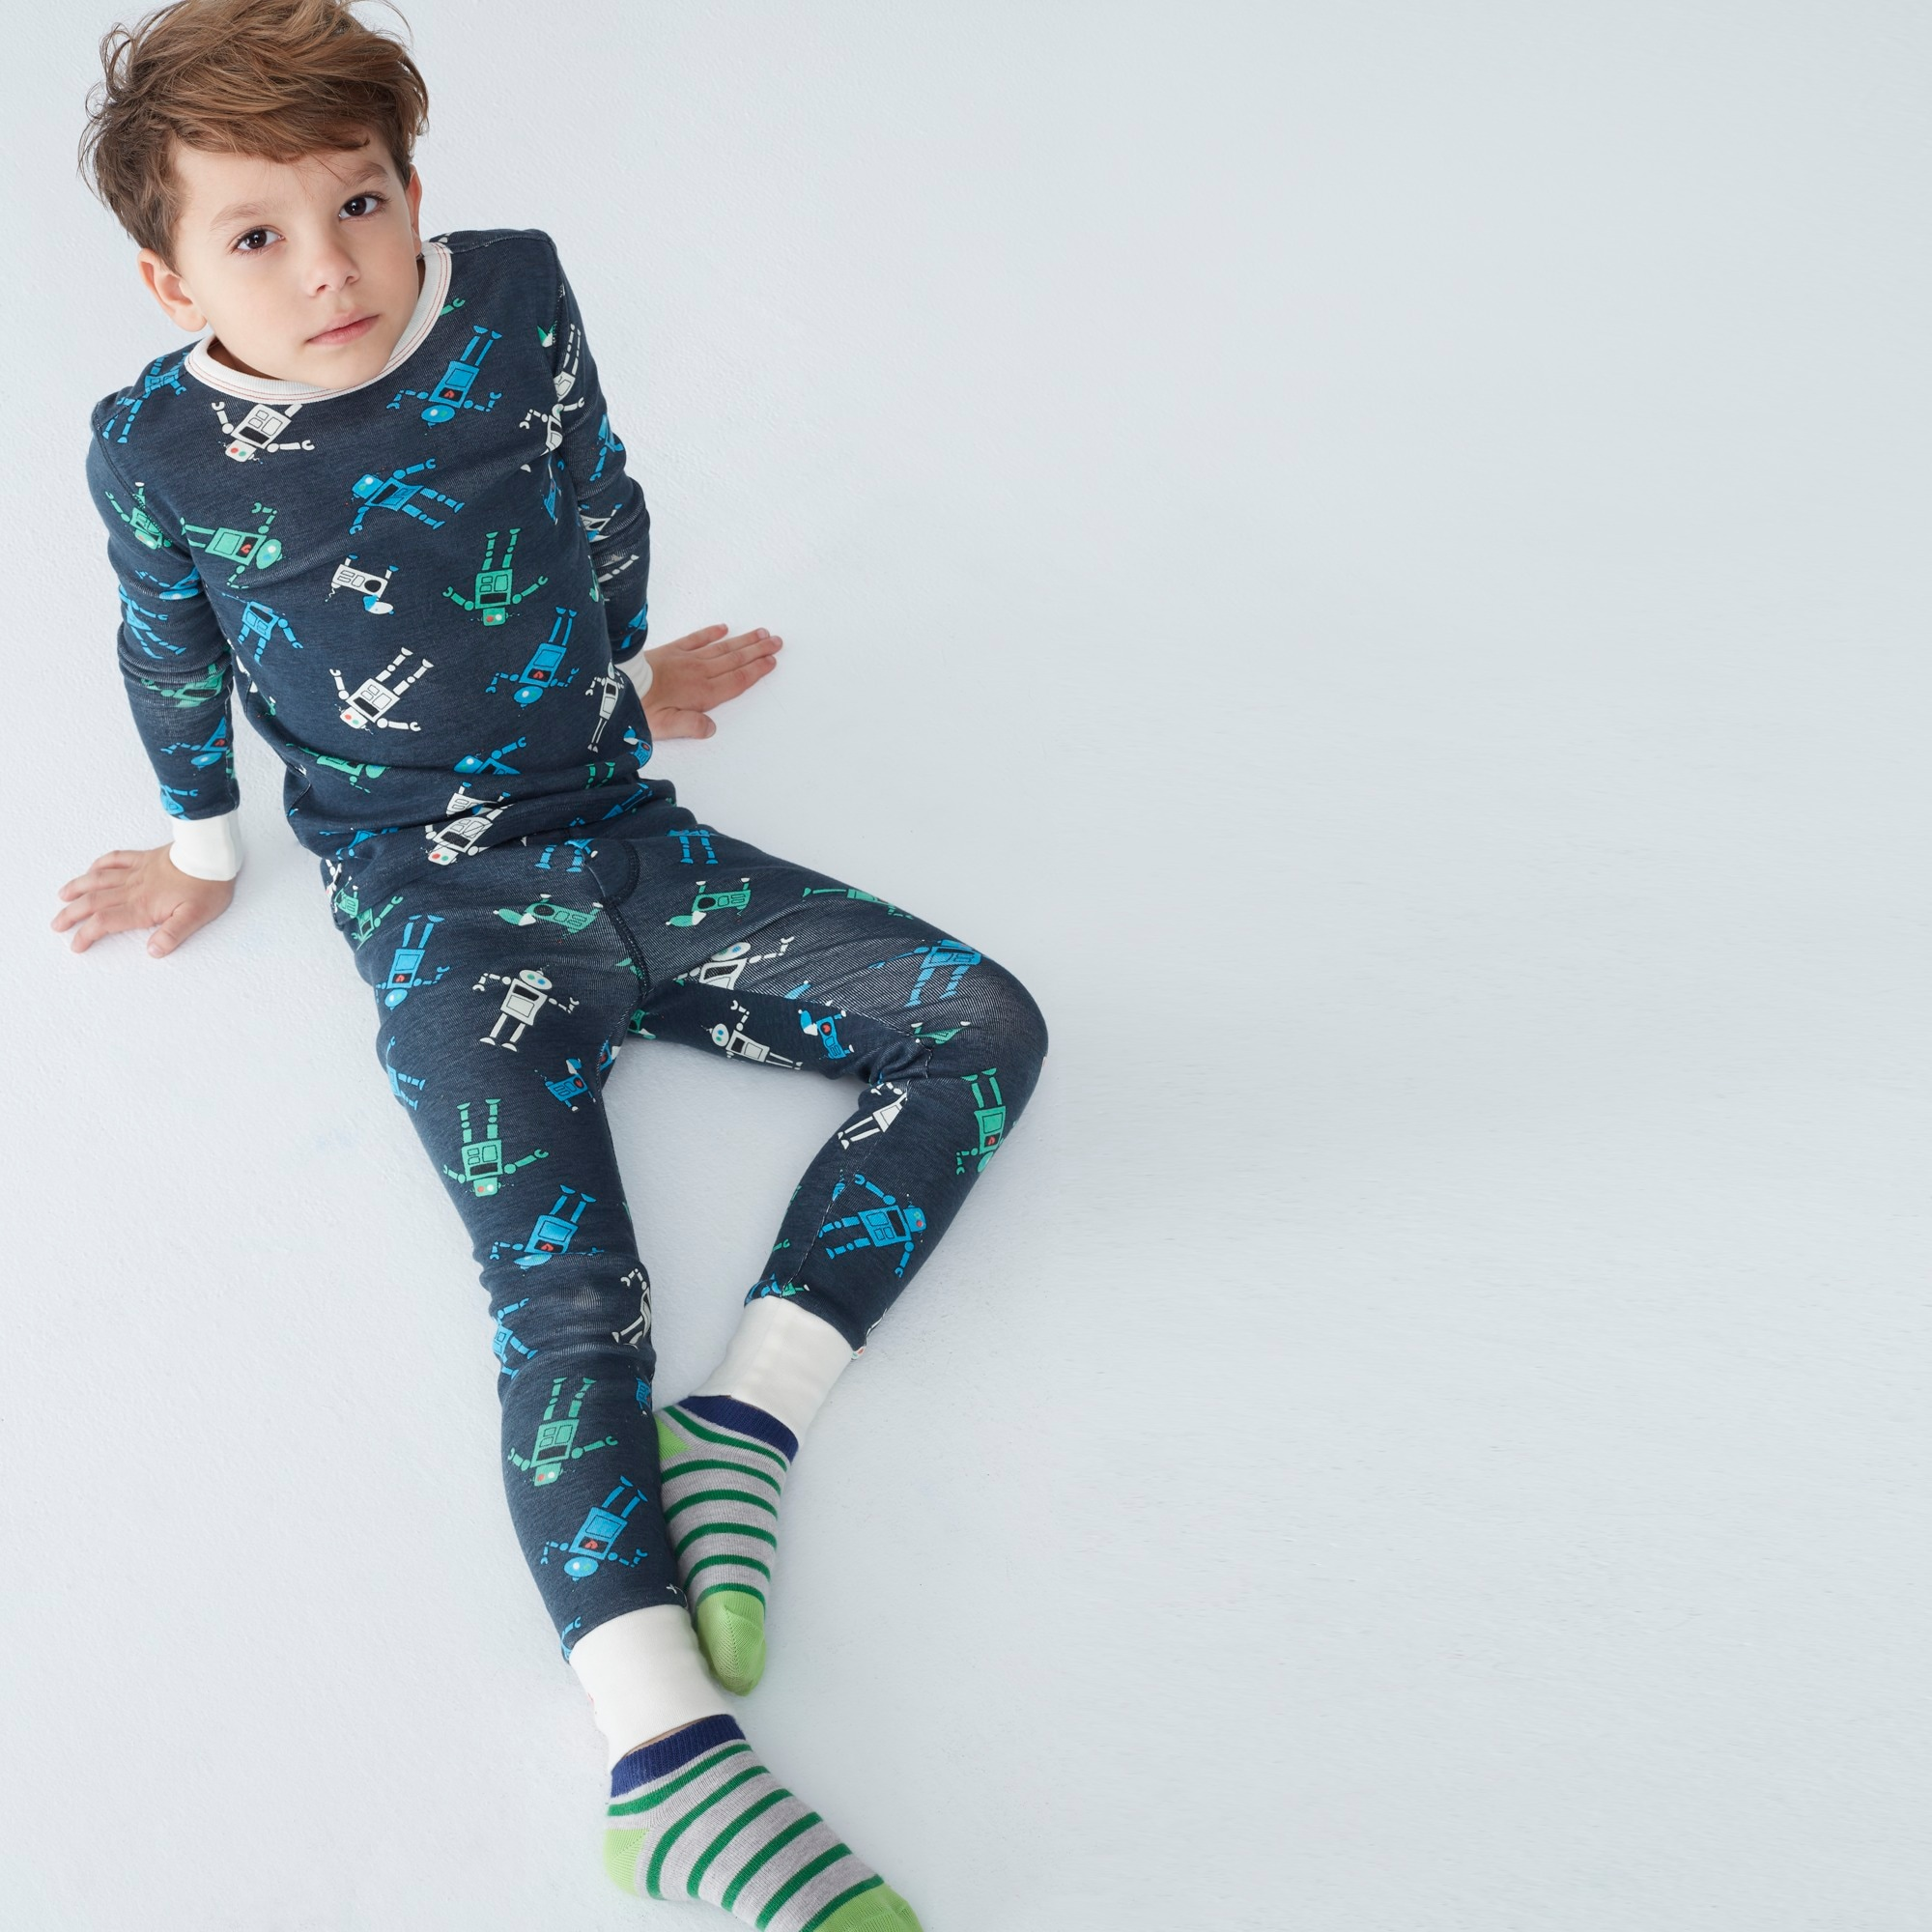 Kids' pajama set in robots boy pajamas c